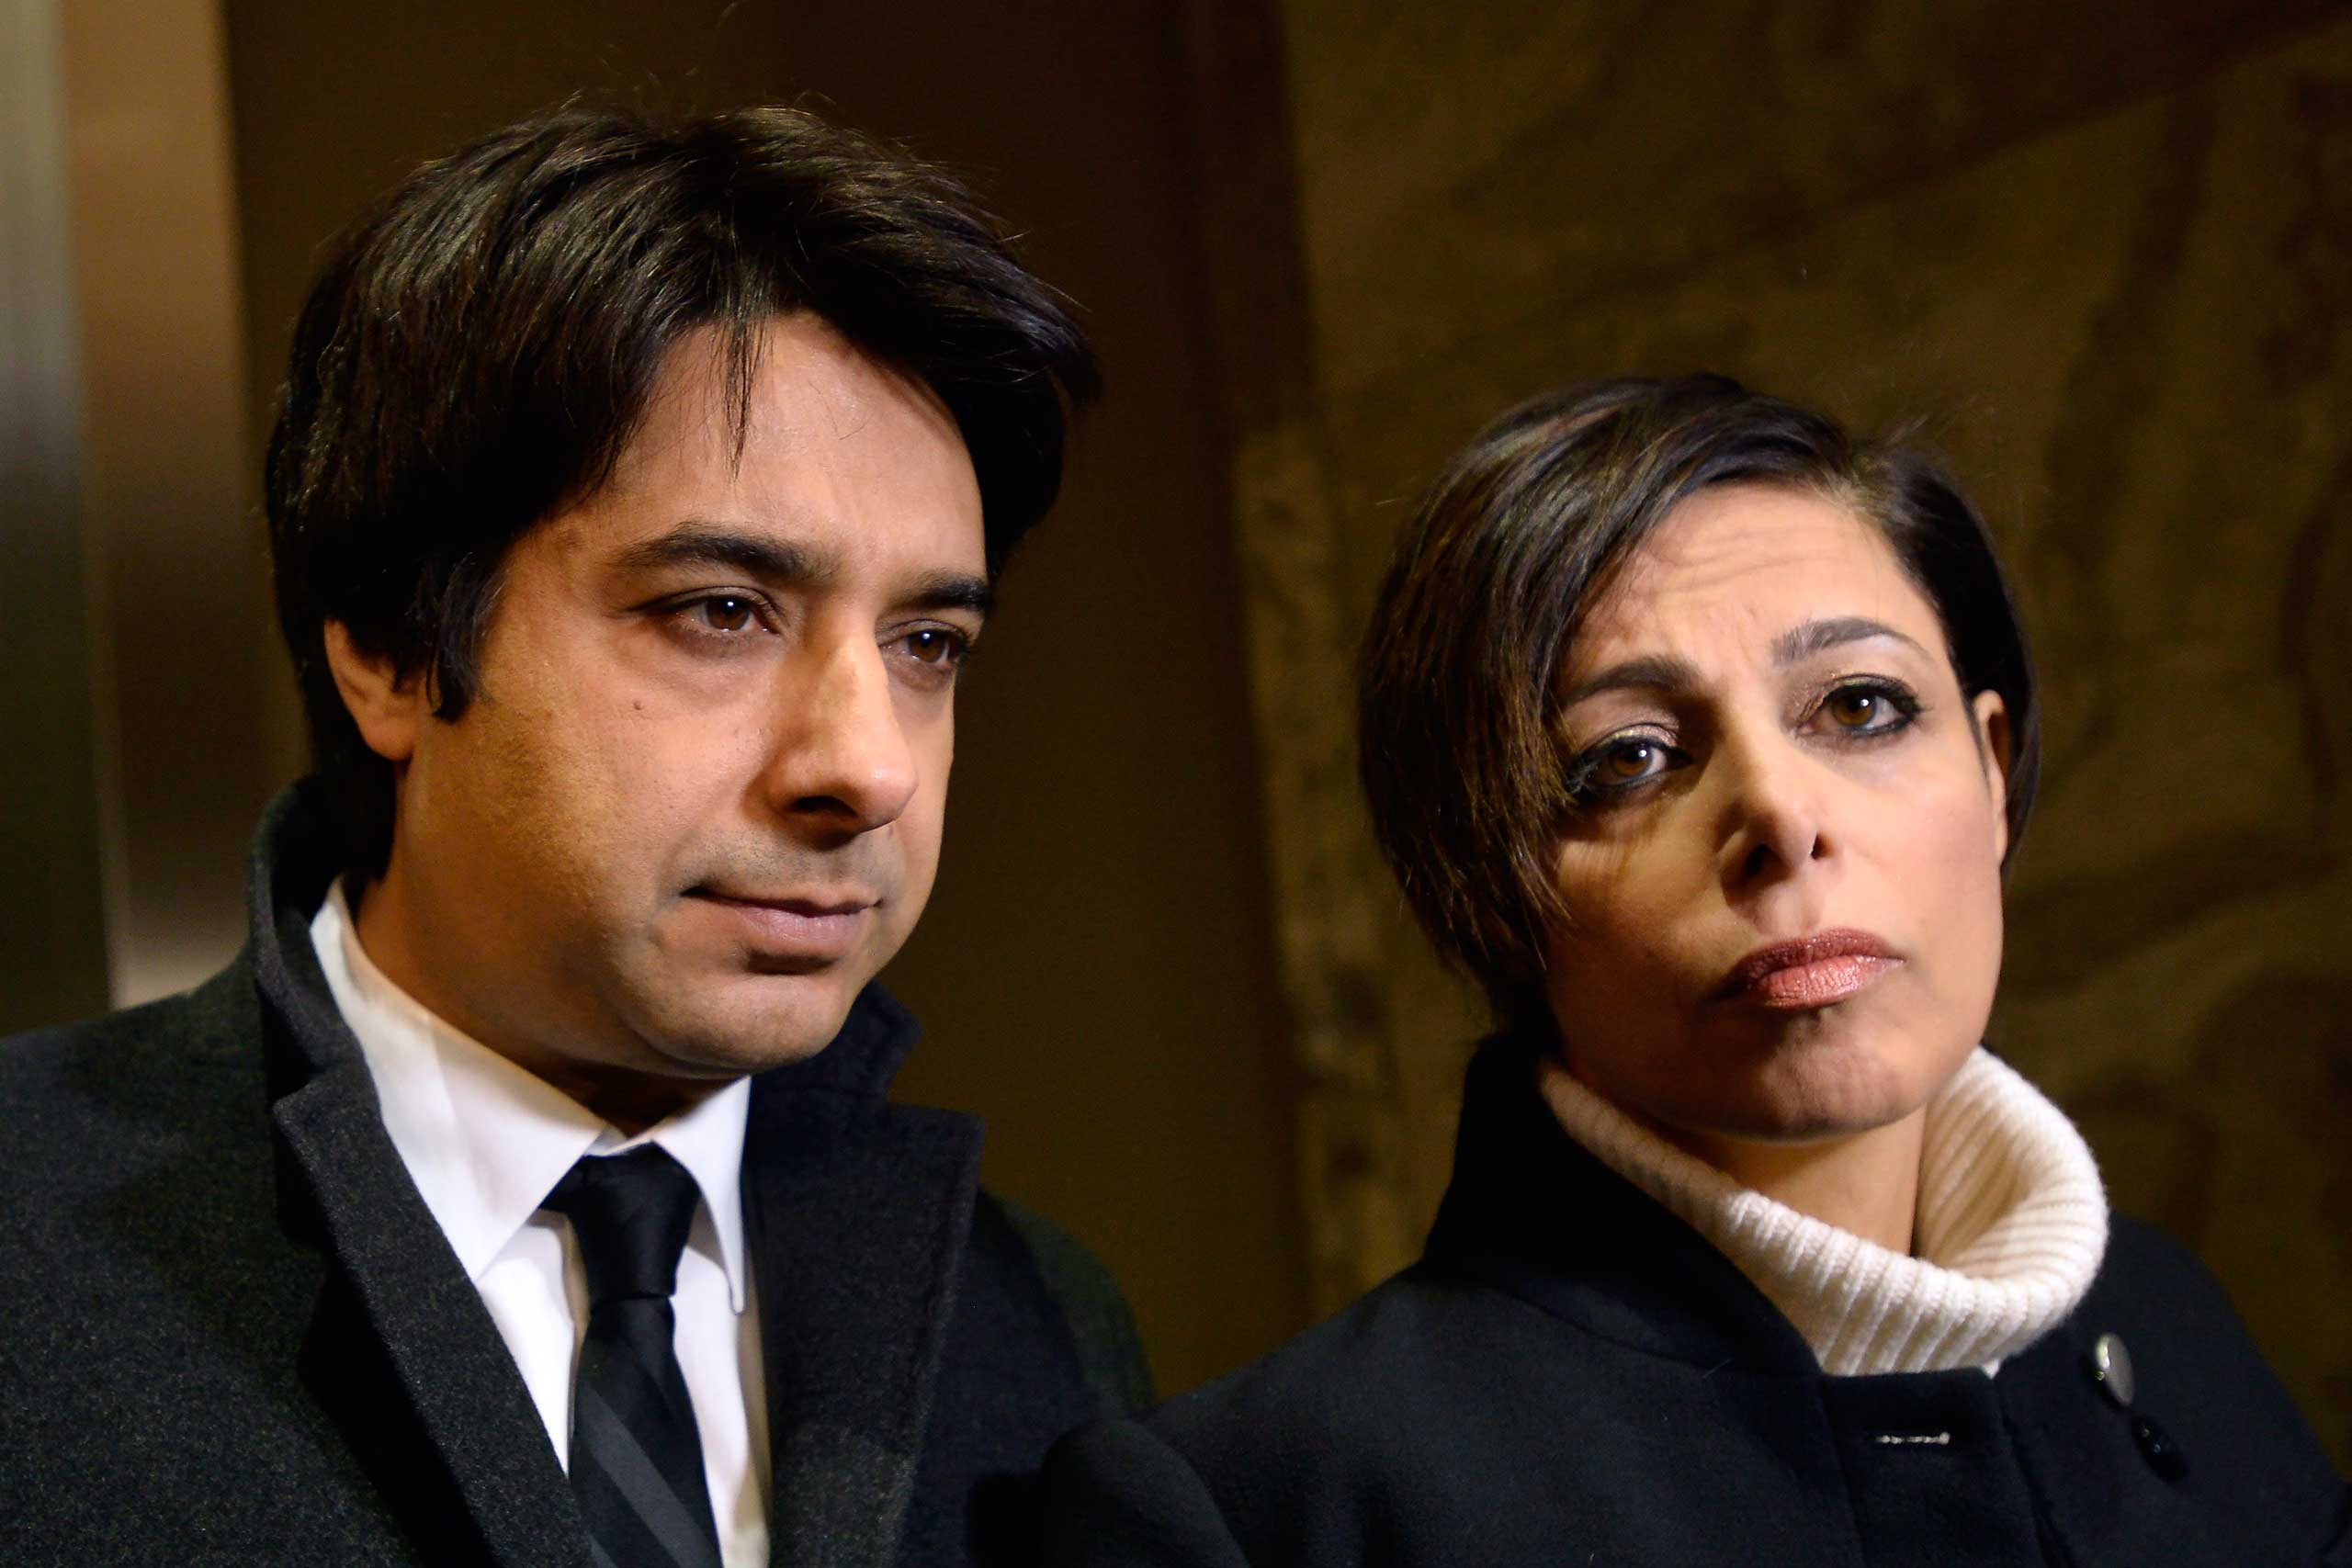 Former CBC radio host Jian Ghomeshi, left, and his lawyer, Marie Henein, arrive at court in Toronto on Jan. 8, 2015.